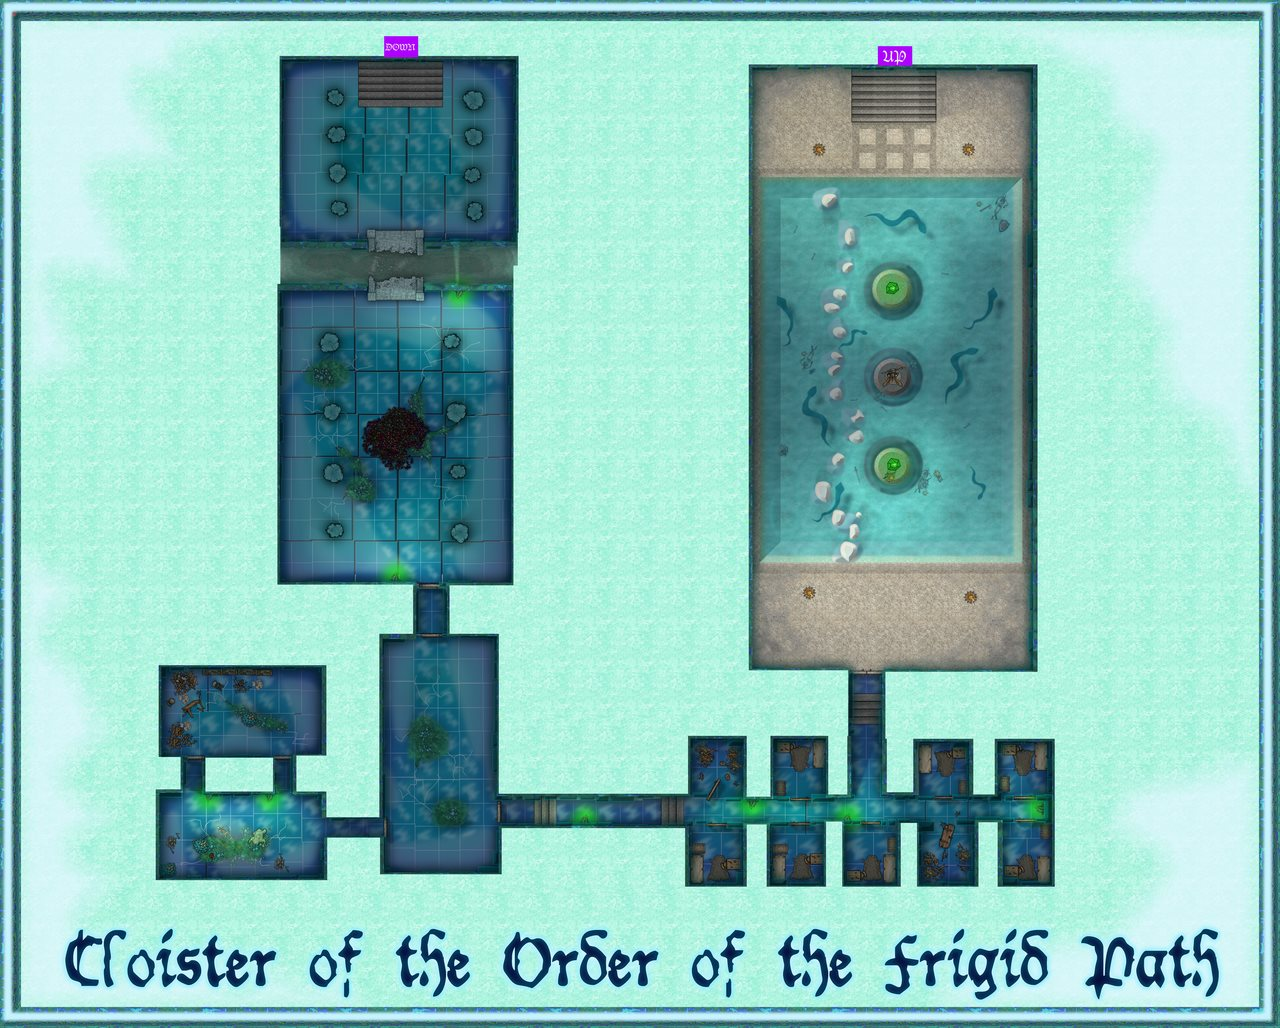 Nibirum Map: temple of the unholy dungeon level 14 - cloister of the order of the frigid path by Mark Olsen